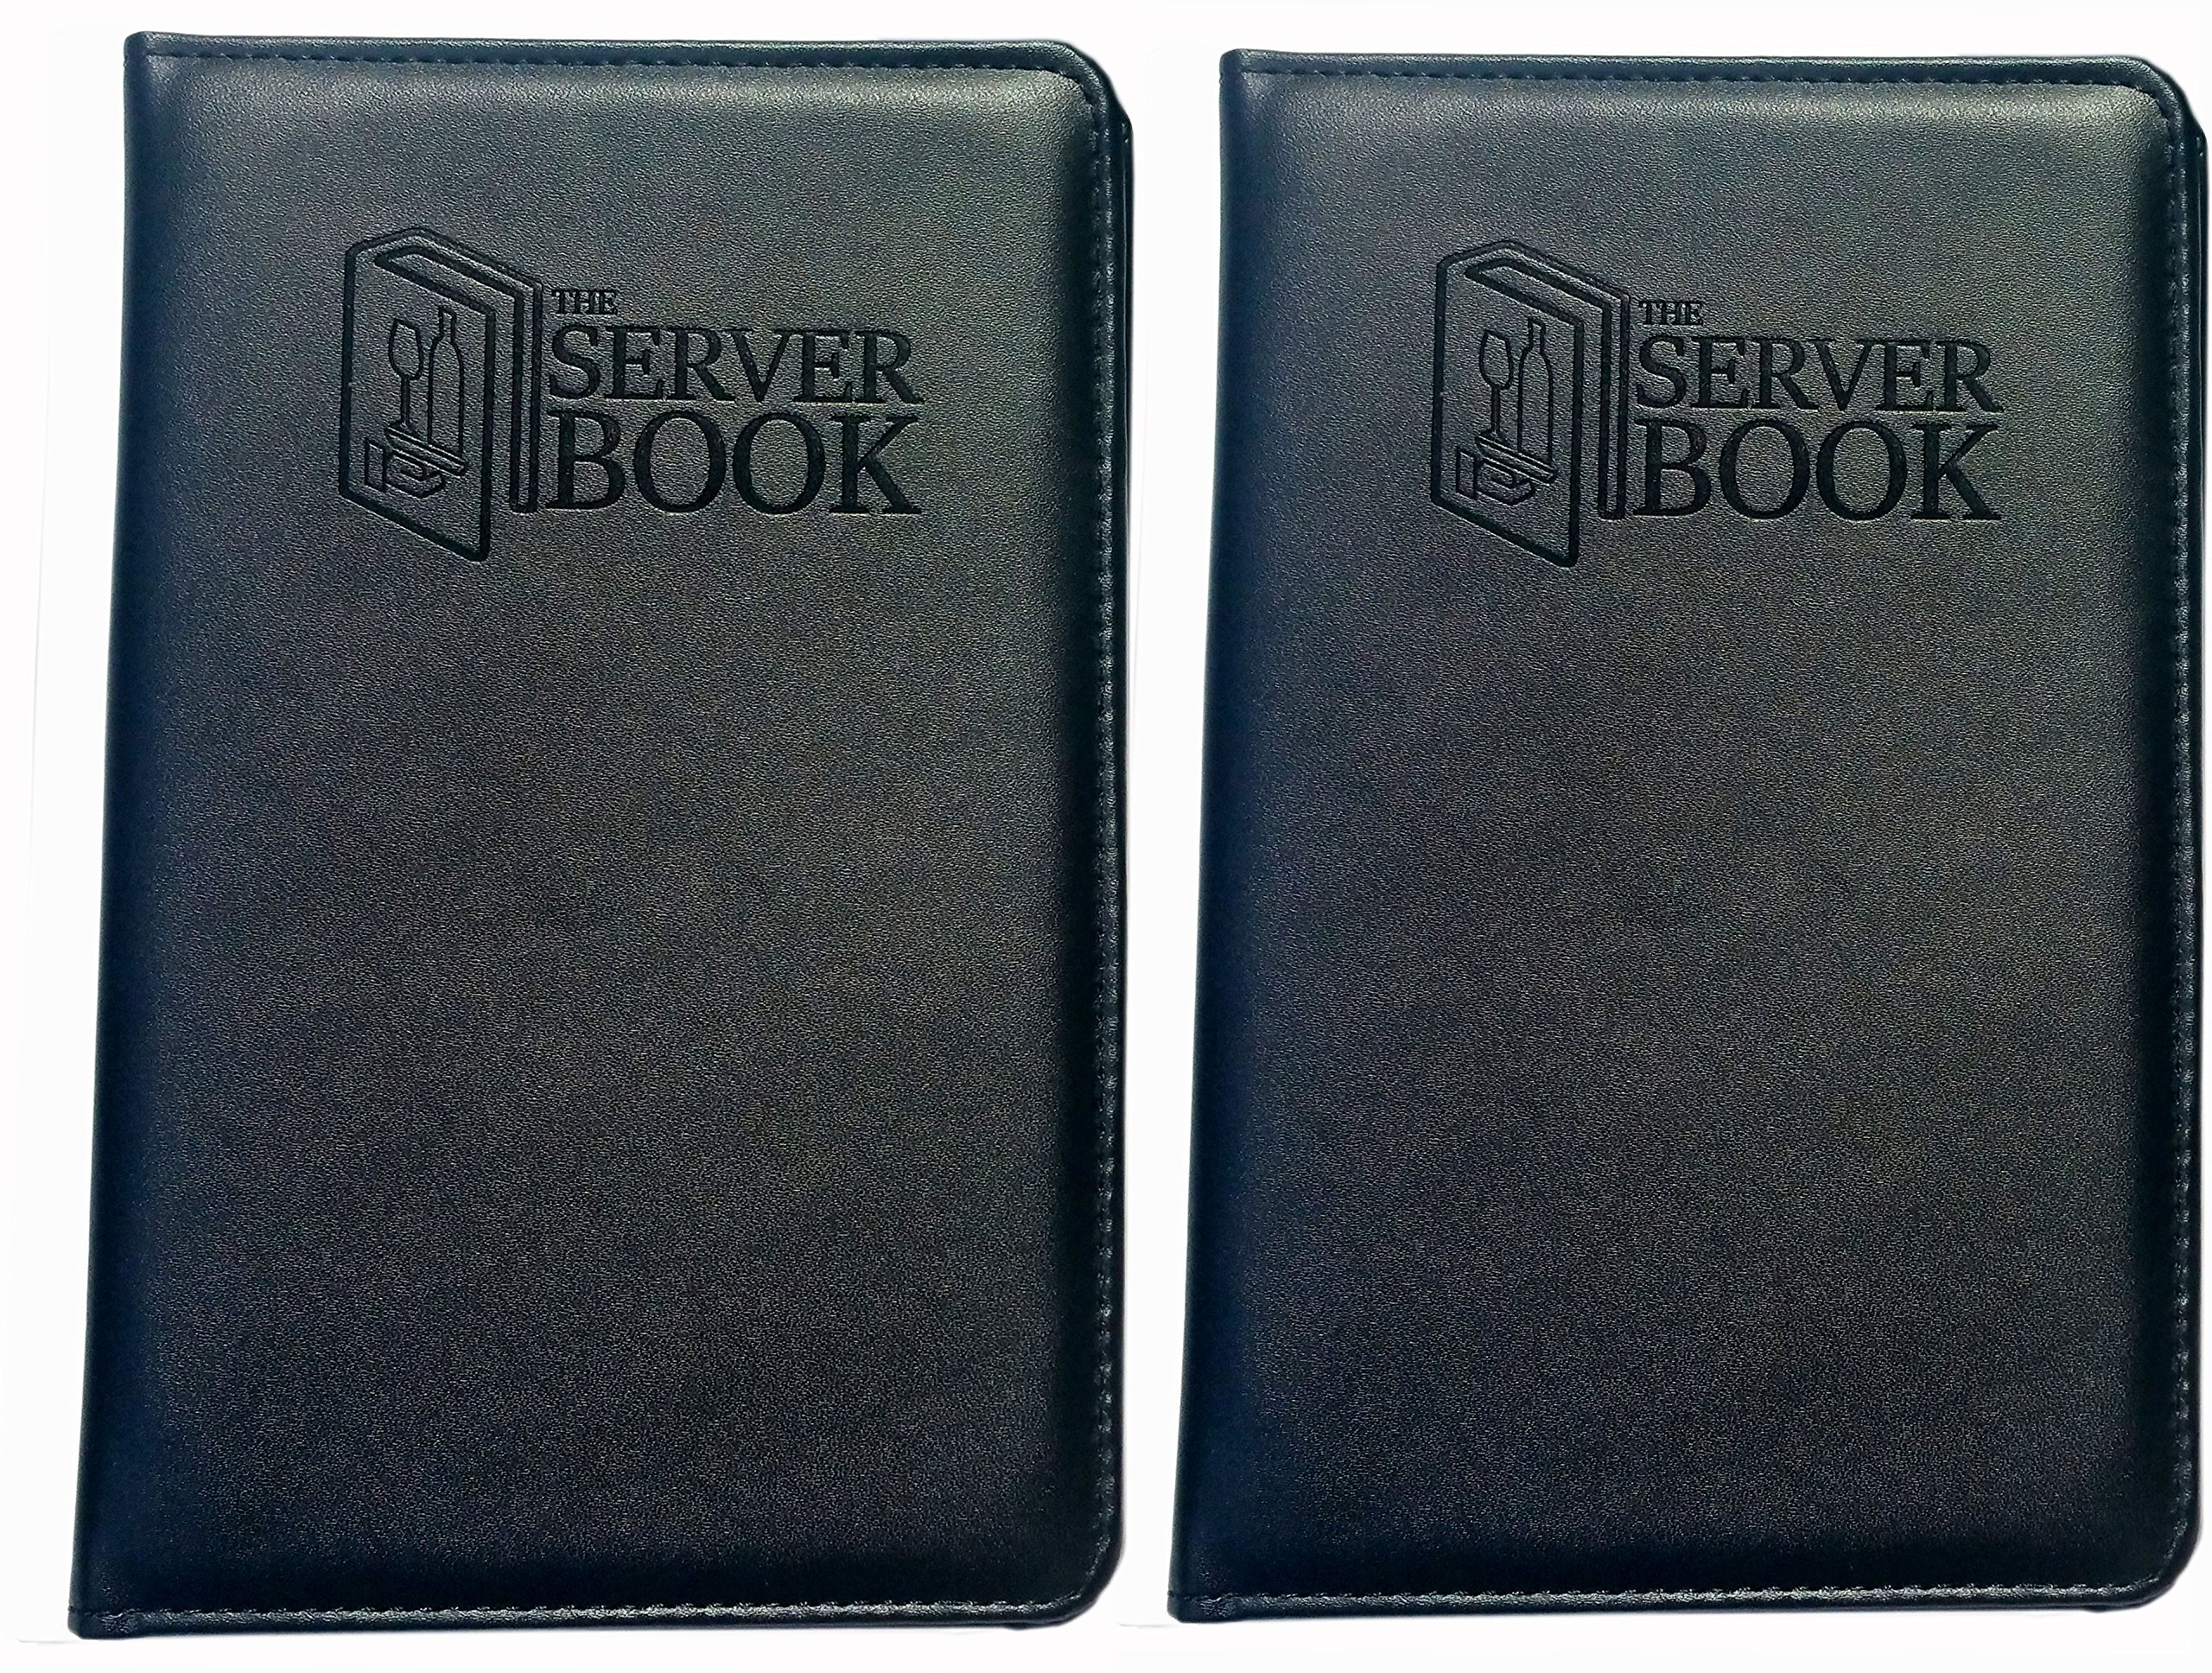 2 Server Books with Zipper Pocket - Black Waitress/Waiter Book with Money Pocket For Every Apron - Food Service Equipment & Supplies - Menu & Guest Check Disiplayers-5.2 x 8 inches (2)